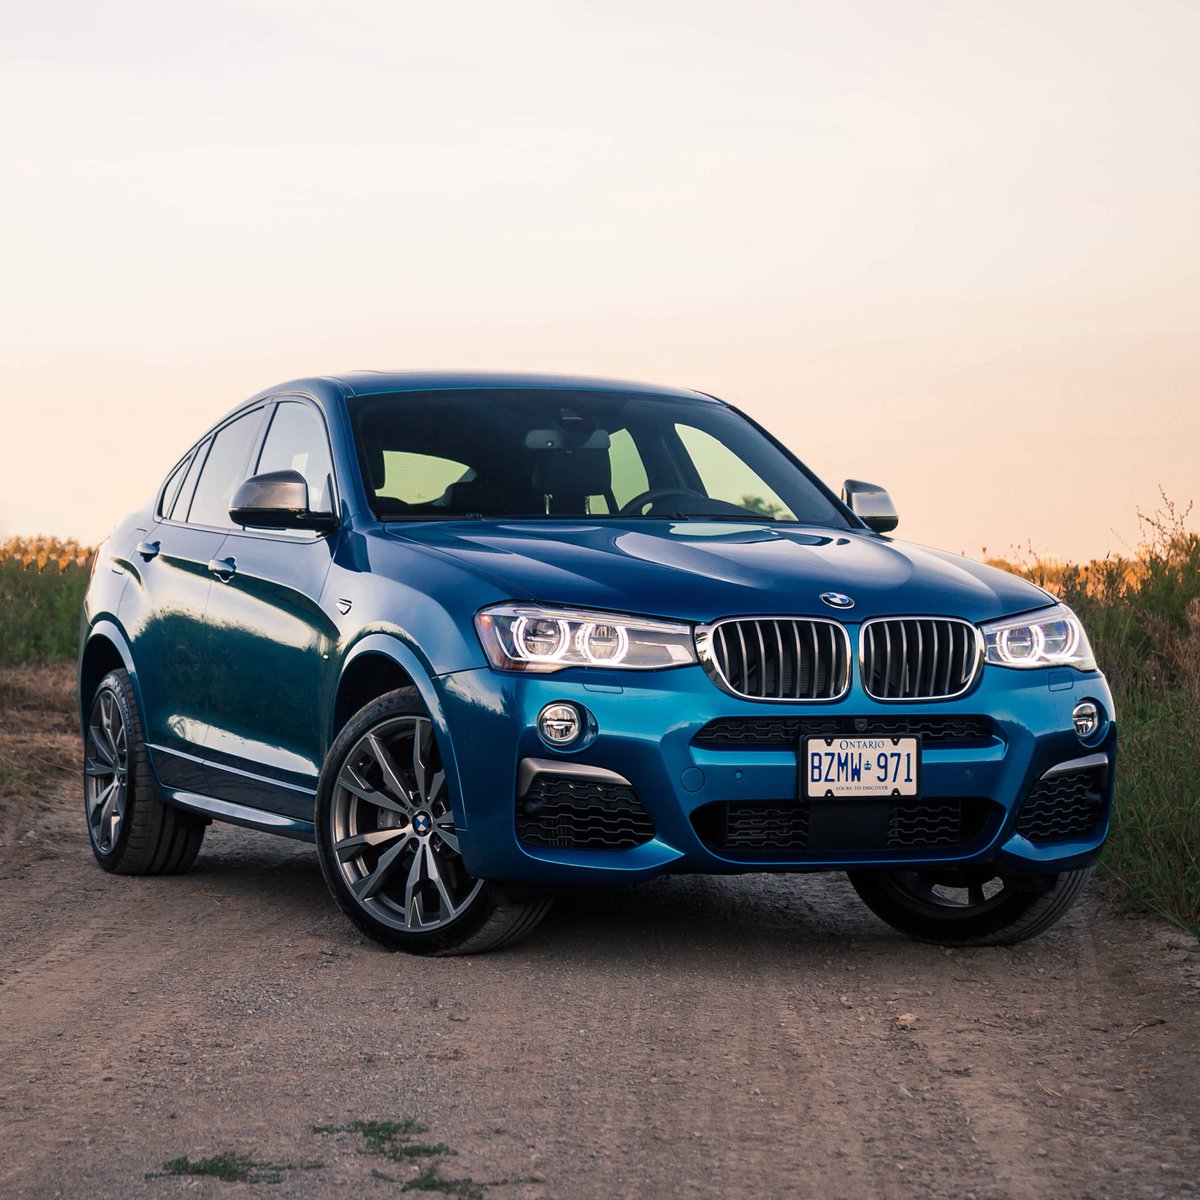 BMW Canada: Brand History & Summary. In , BMW Canada (formerly known as BMW Group Canada) sold 44, units, up % percent over previous year. It marked the 27th year of growth for the group. On the other hand, BMW US sales had slowed down in For the year, it sold ,, down % percent compared to